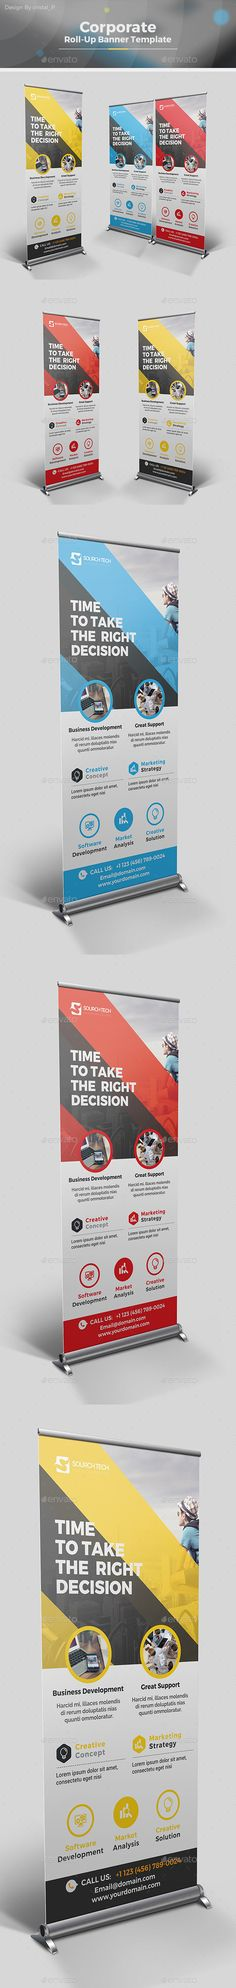 Fitness/Gym Roll-Up Template | Ai illustrator, Template and Banner ...